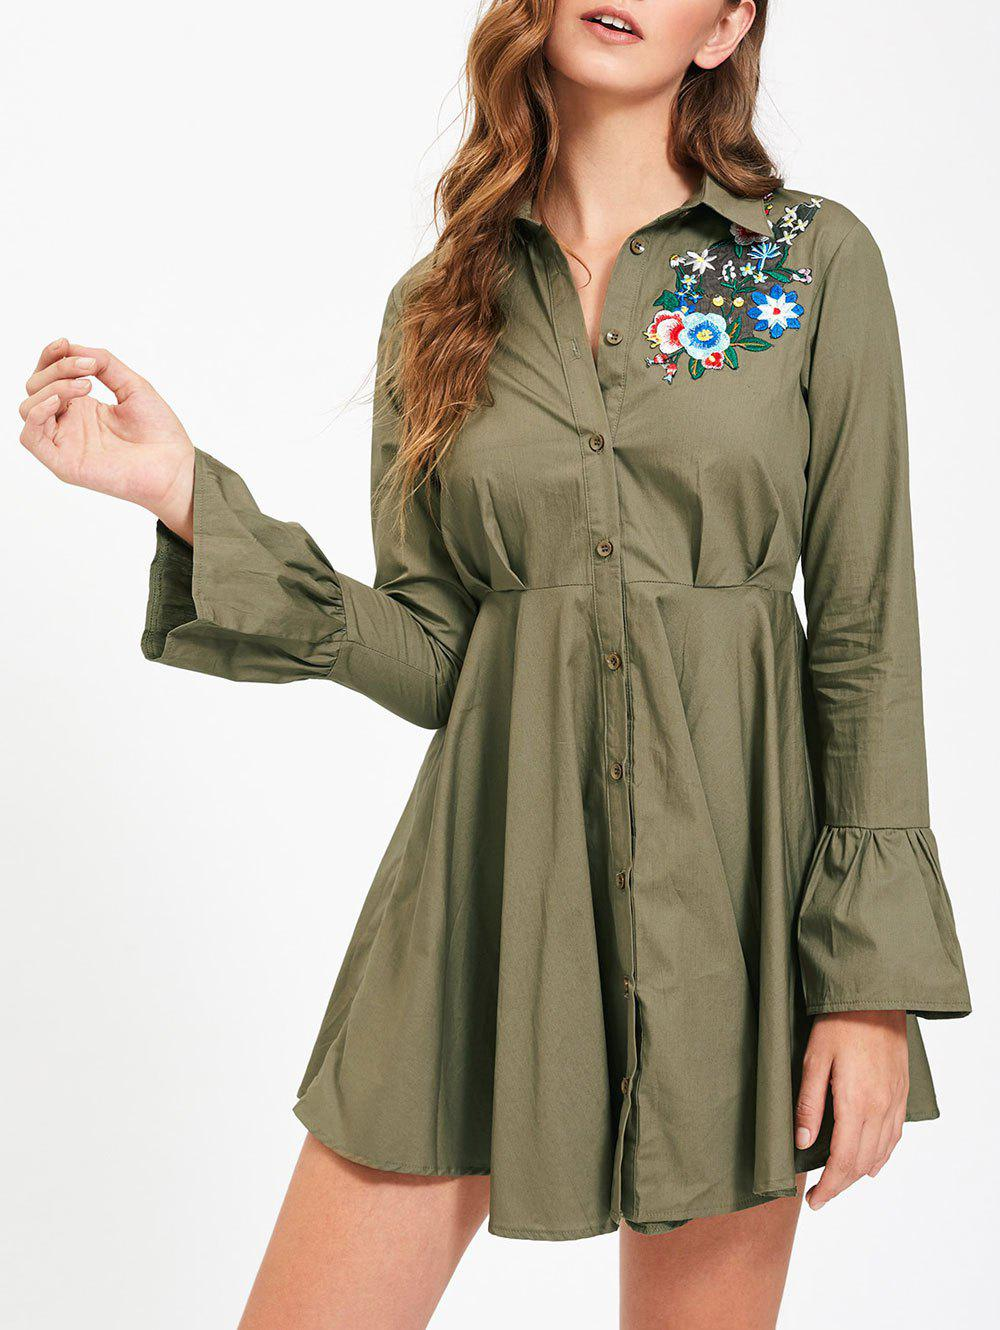 Embroidery Flare Sleeve Button Up Shirt Dress - ARMY GREEN L